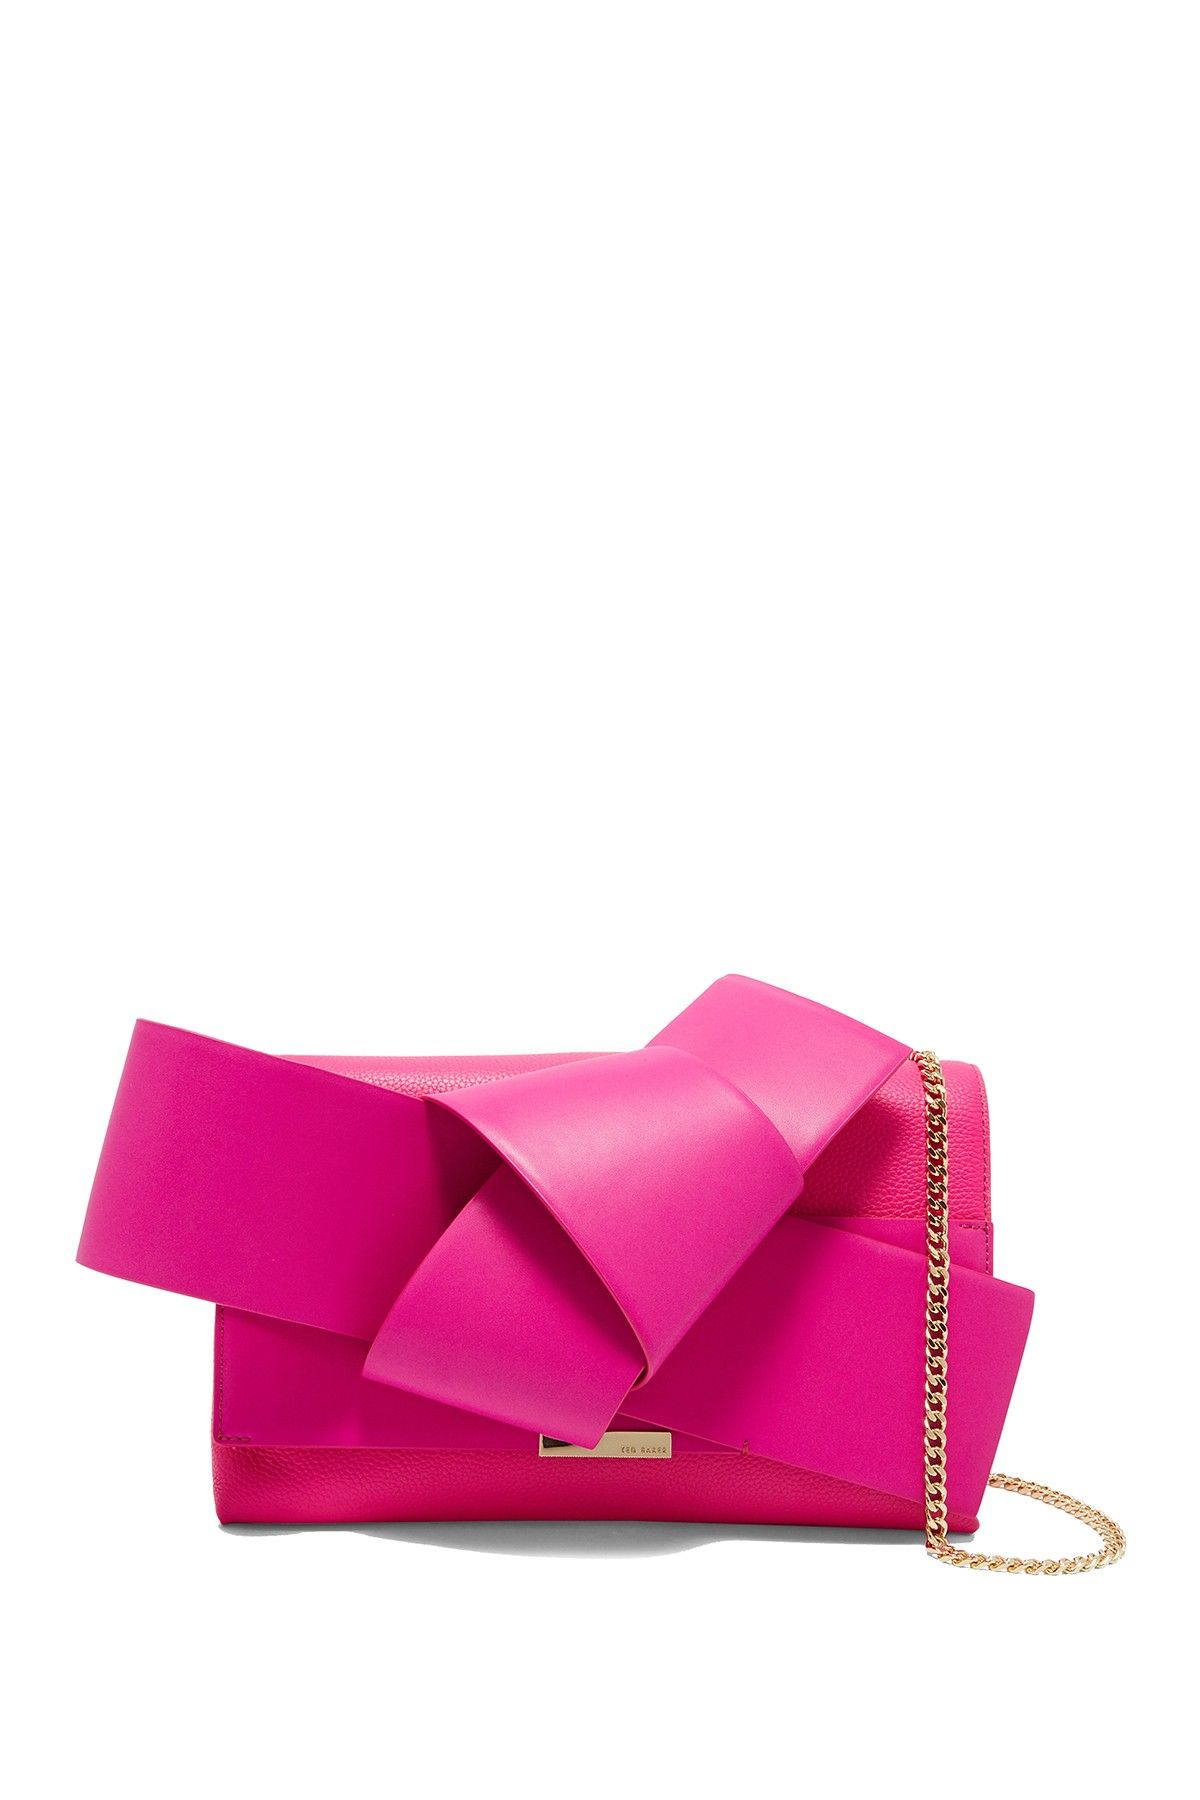 f89e32162feeac Image of Ted Baker London Asterr Giant Knot Bow Clutch Bag